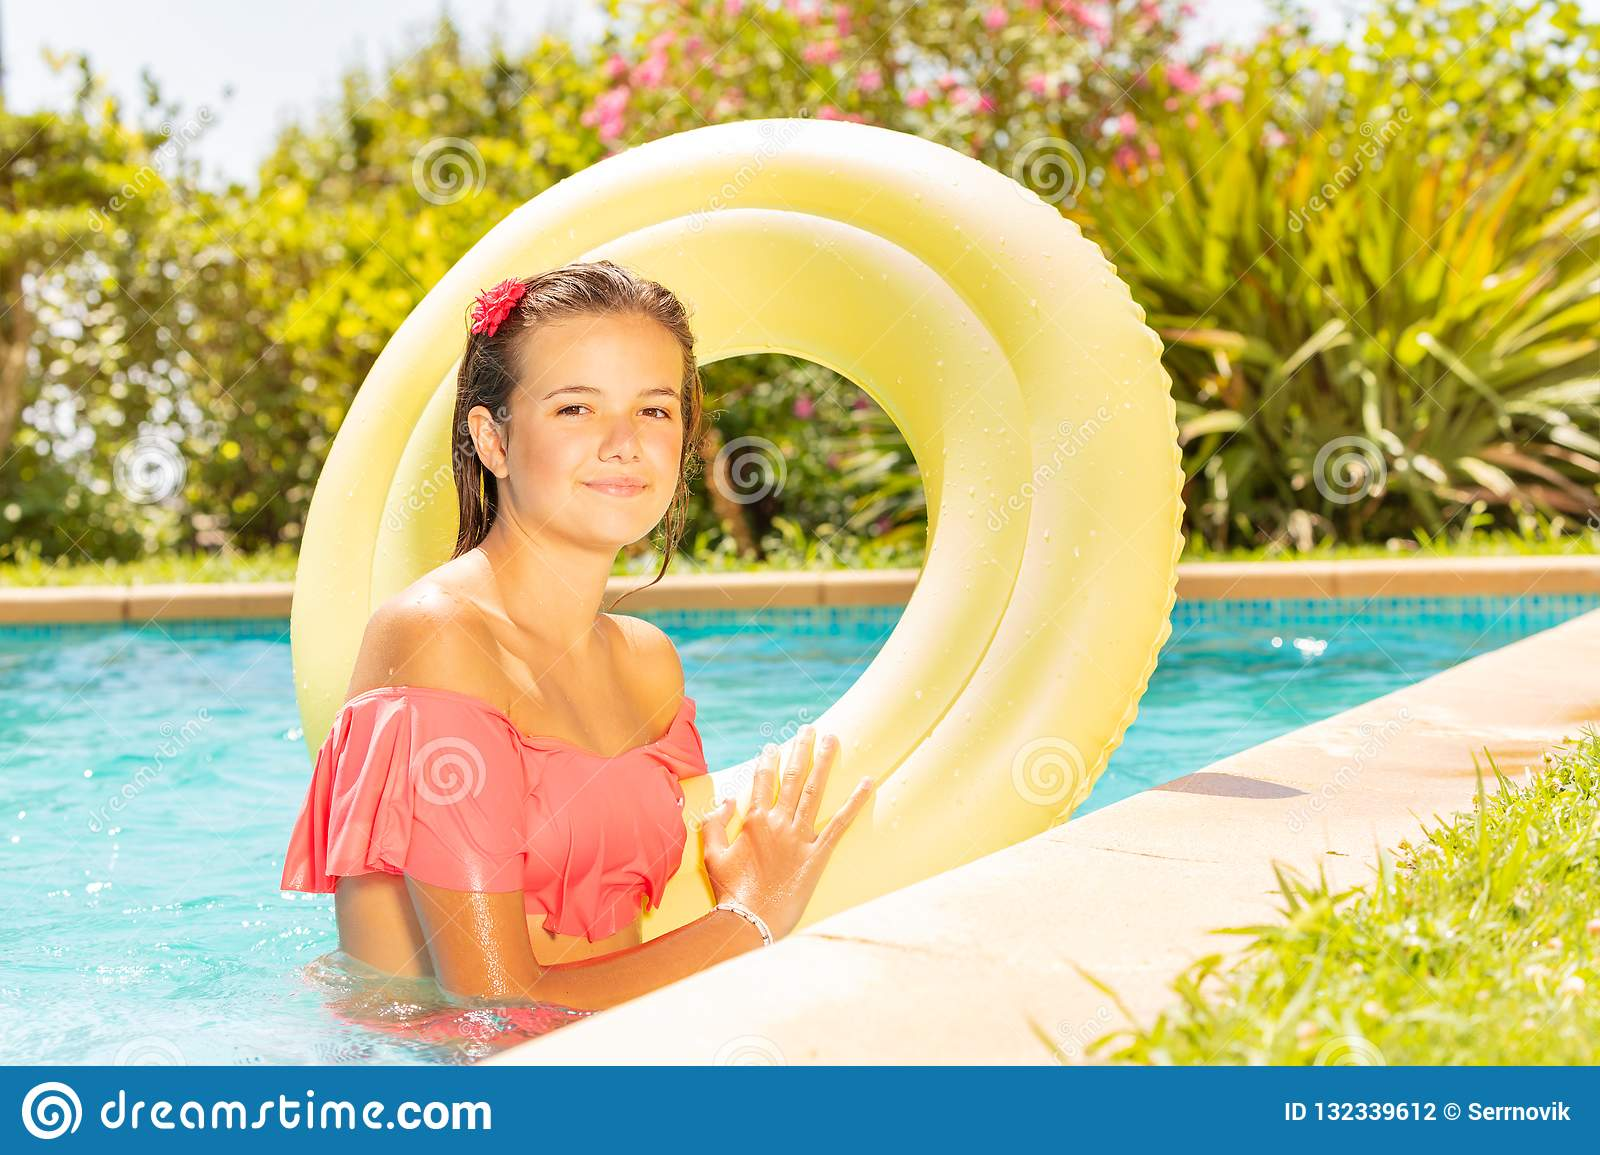 Portrait of beautiful teenage girl wearing bikini standing in outdoor  swimming pool with big yellow swim ring c0662f012